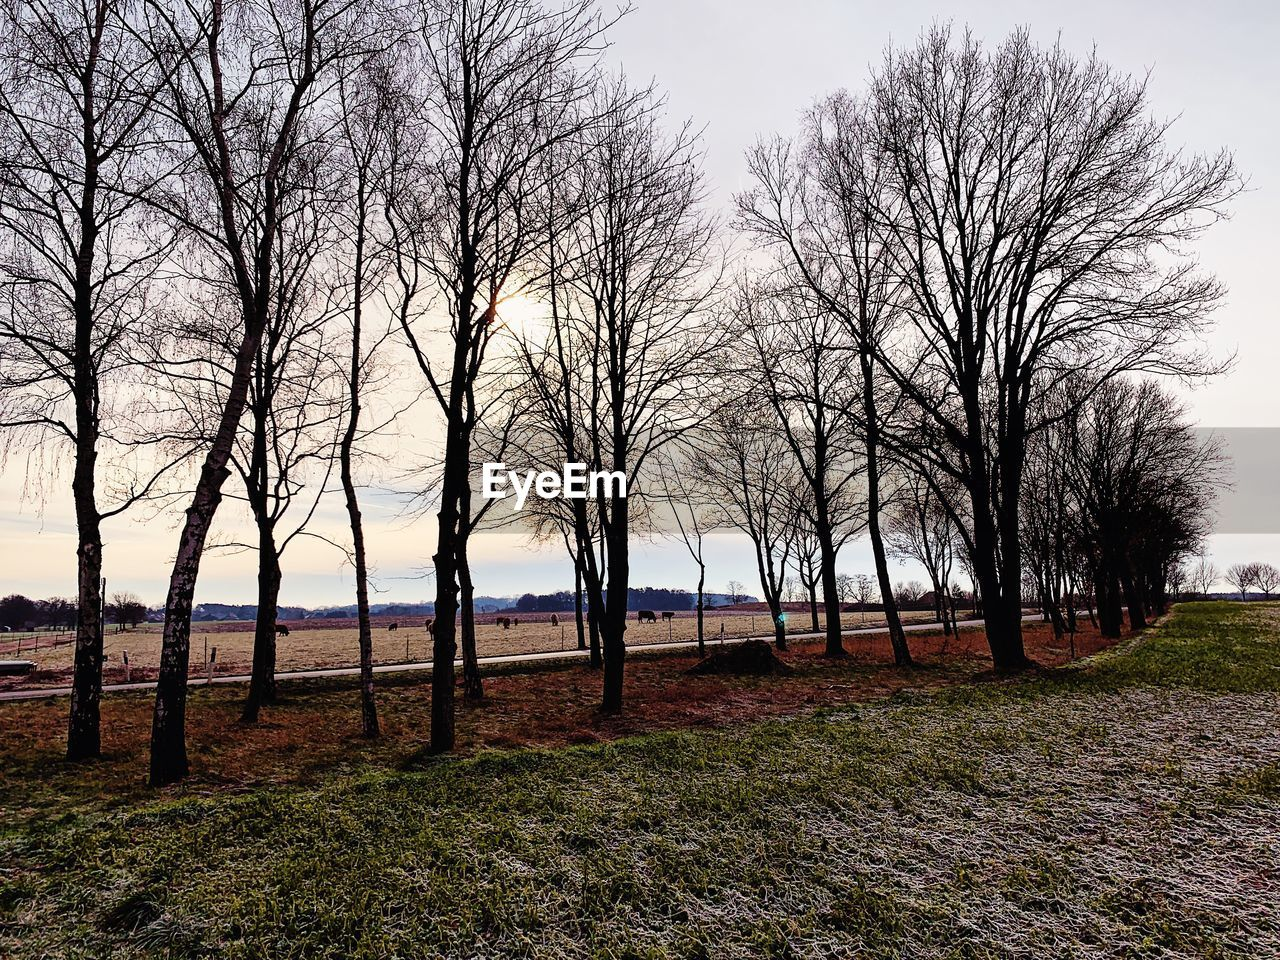 tree, bare tree, plant, sky, tranquility, land, scenics - nature, tranquil scene, landscape, no people, beauty in nature, nature, field, environment, branch, non-urban scene, day, grass, outdoors, clear sky